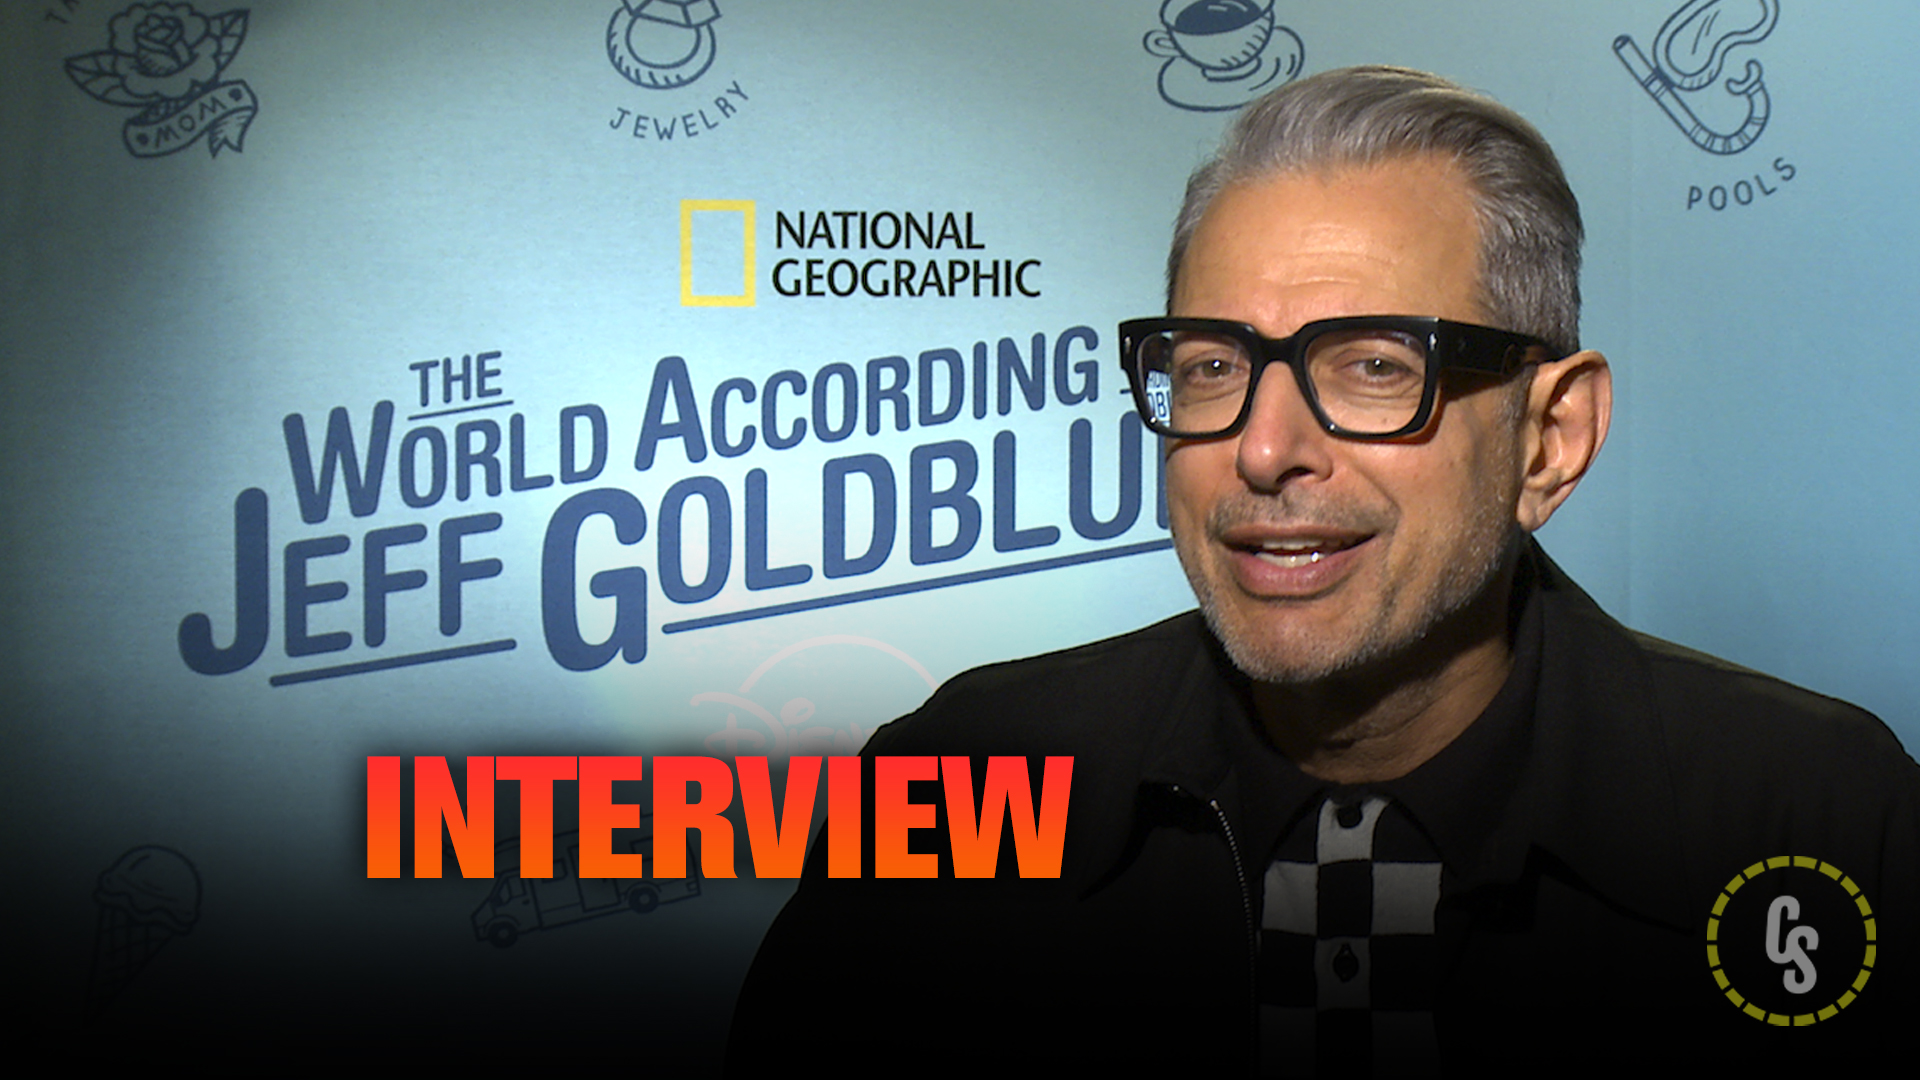 CS Video: Goldblum on The World According to Jeff Goldblum Docuseries